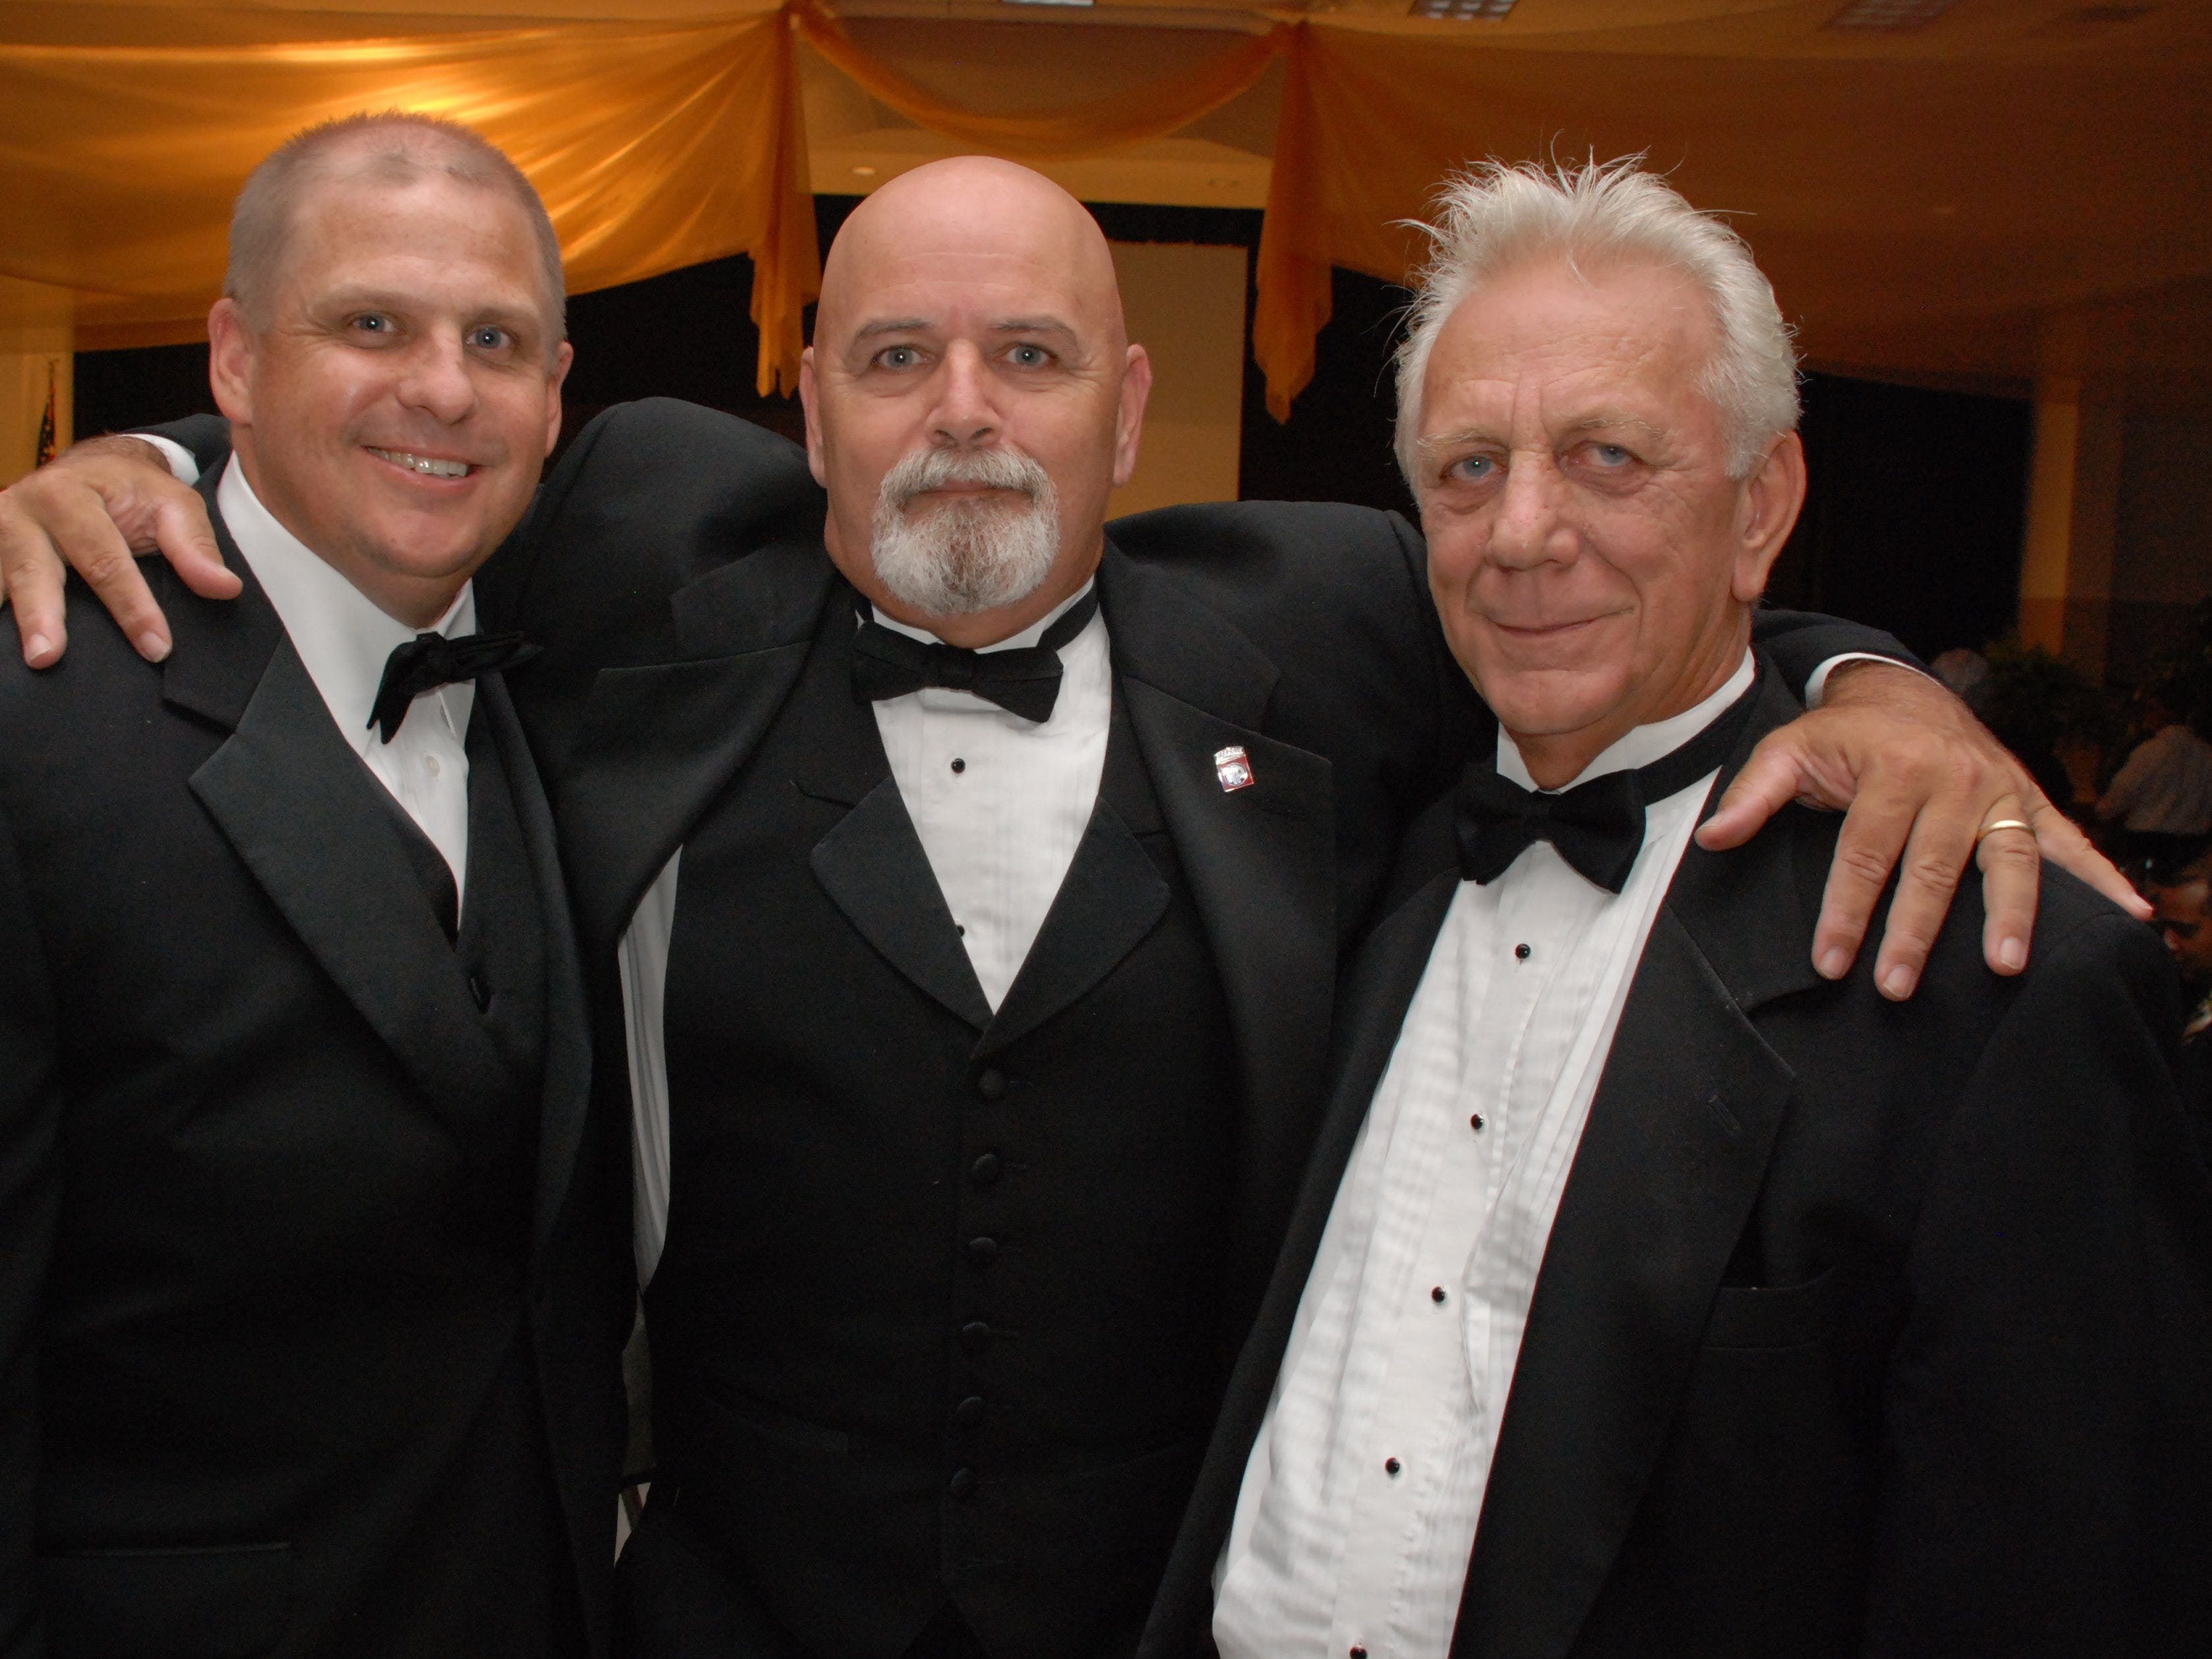 In this 2010 file photo, State Rep. Ritch Workman, Dave Isnardi and Mayor John Mazziotti had some laughs at the Palm Bay Mayor's Ball.